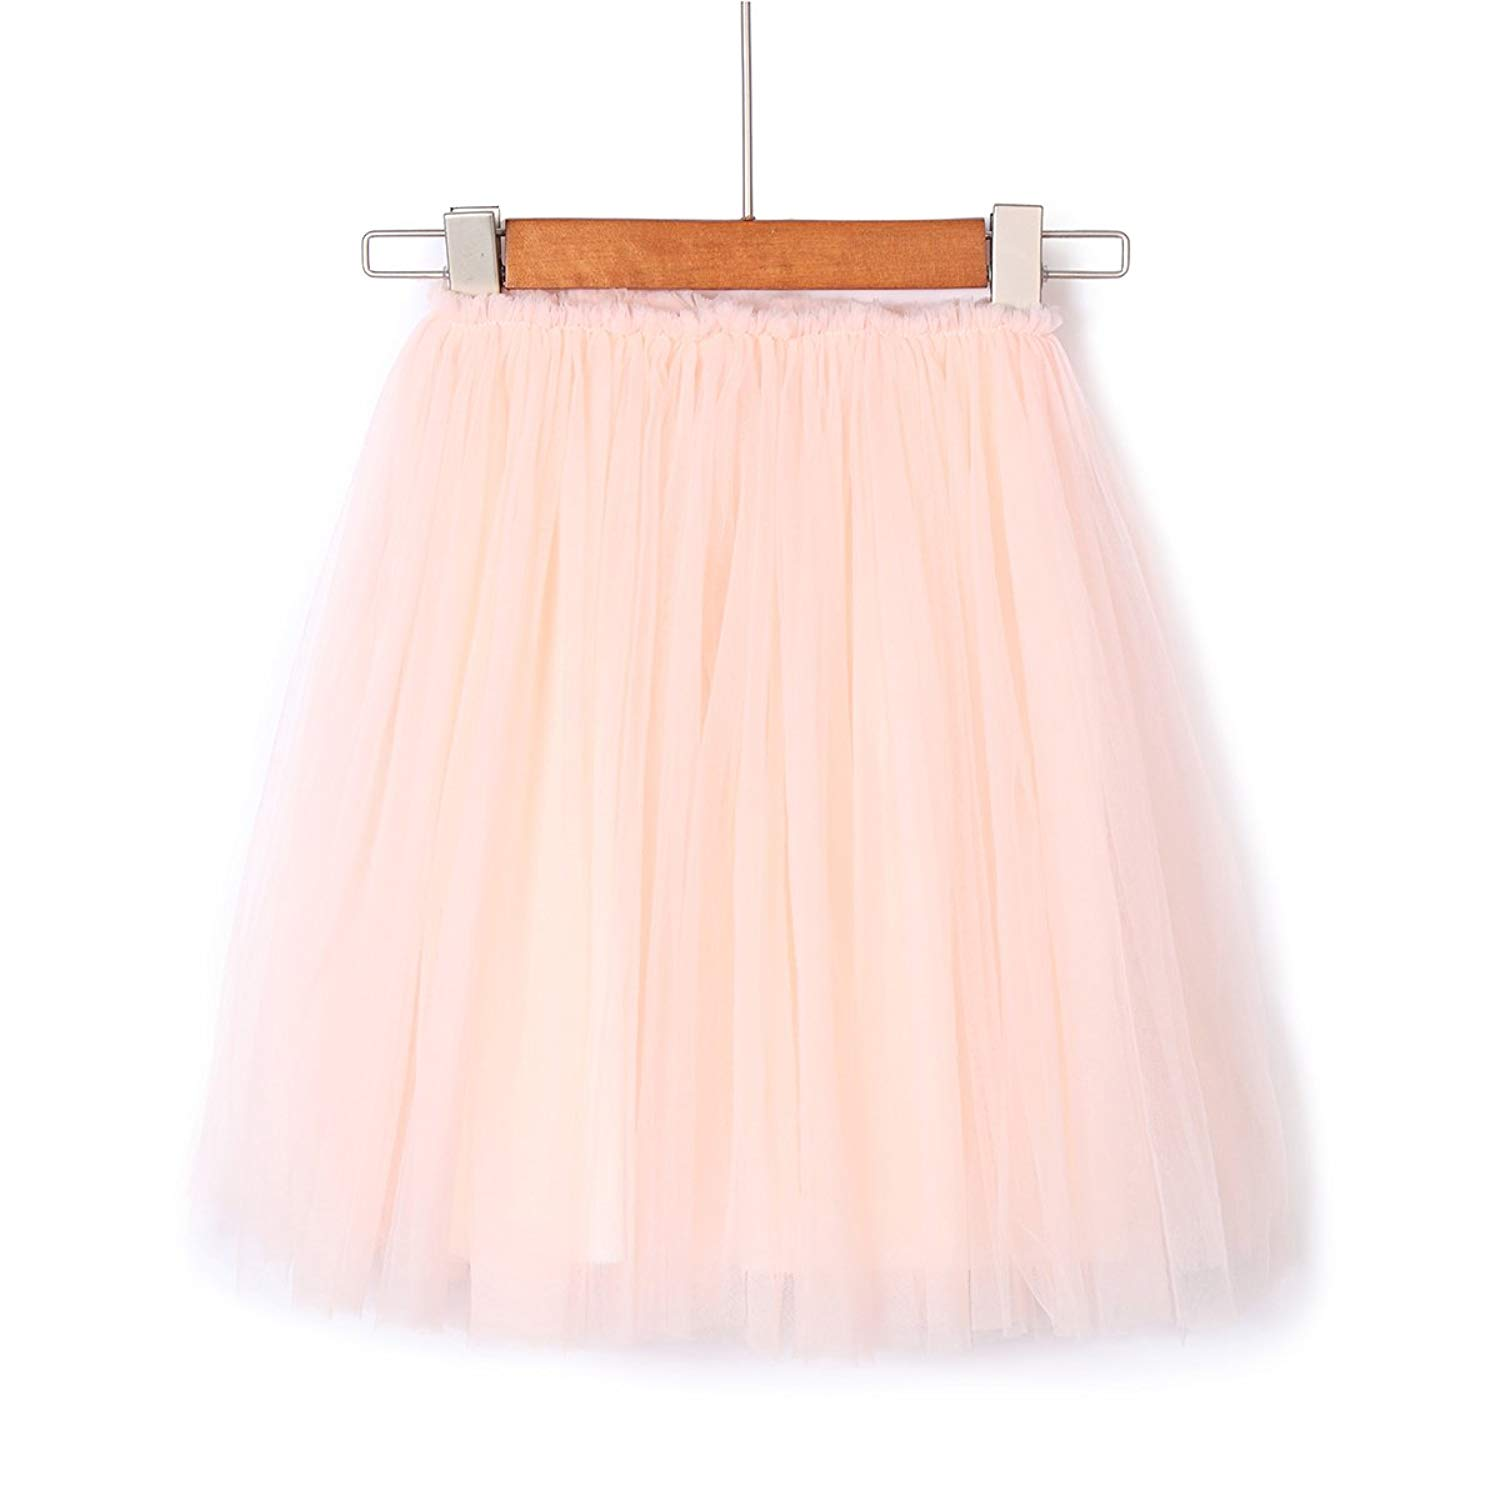 Flofallzique Tulle Tutu Girls Skirt Mid Calf 1-9 Year Old Toddler Skirt Dancing Skirt Girls Clothes